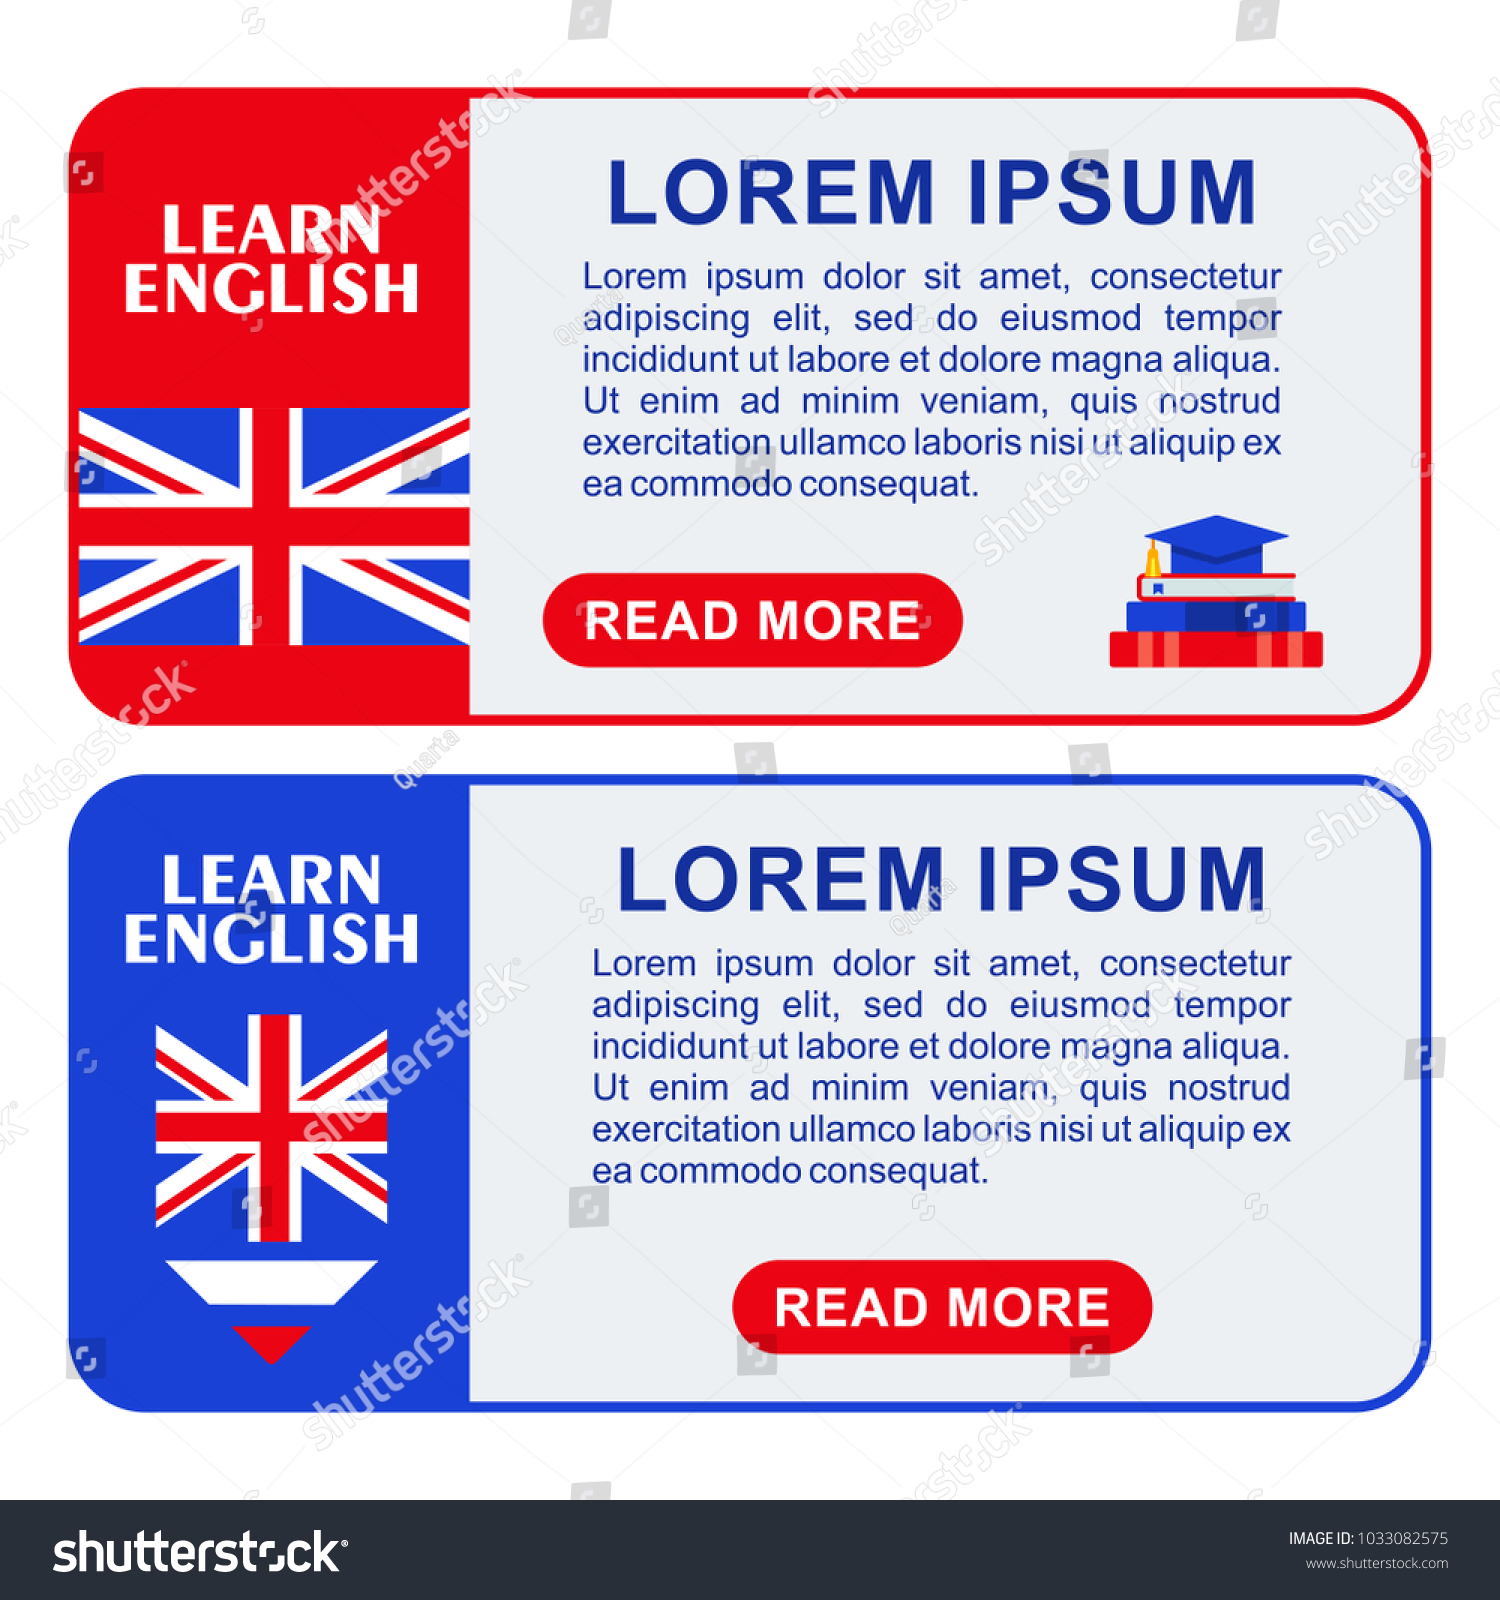 Social networks for learning foreign language: a selection of sites